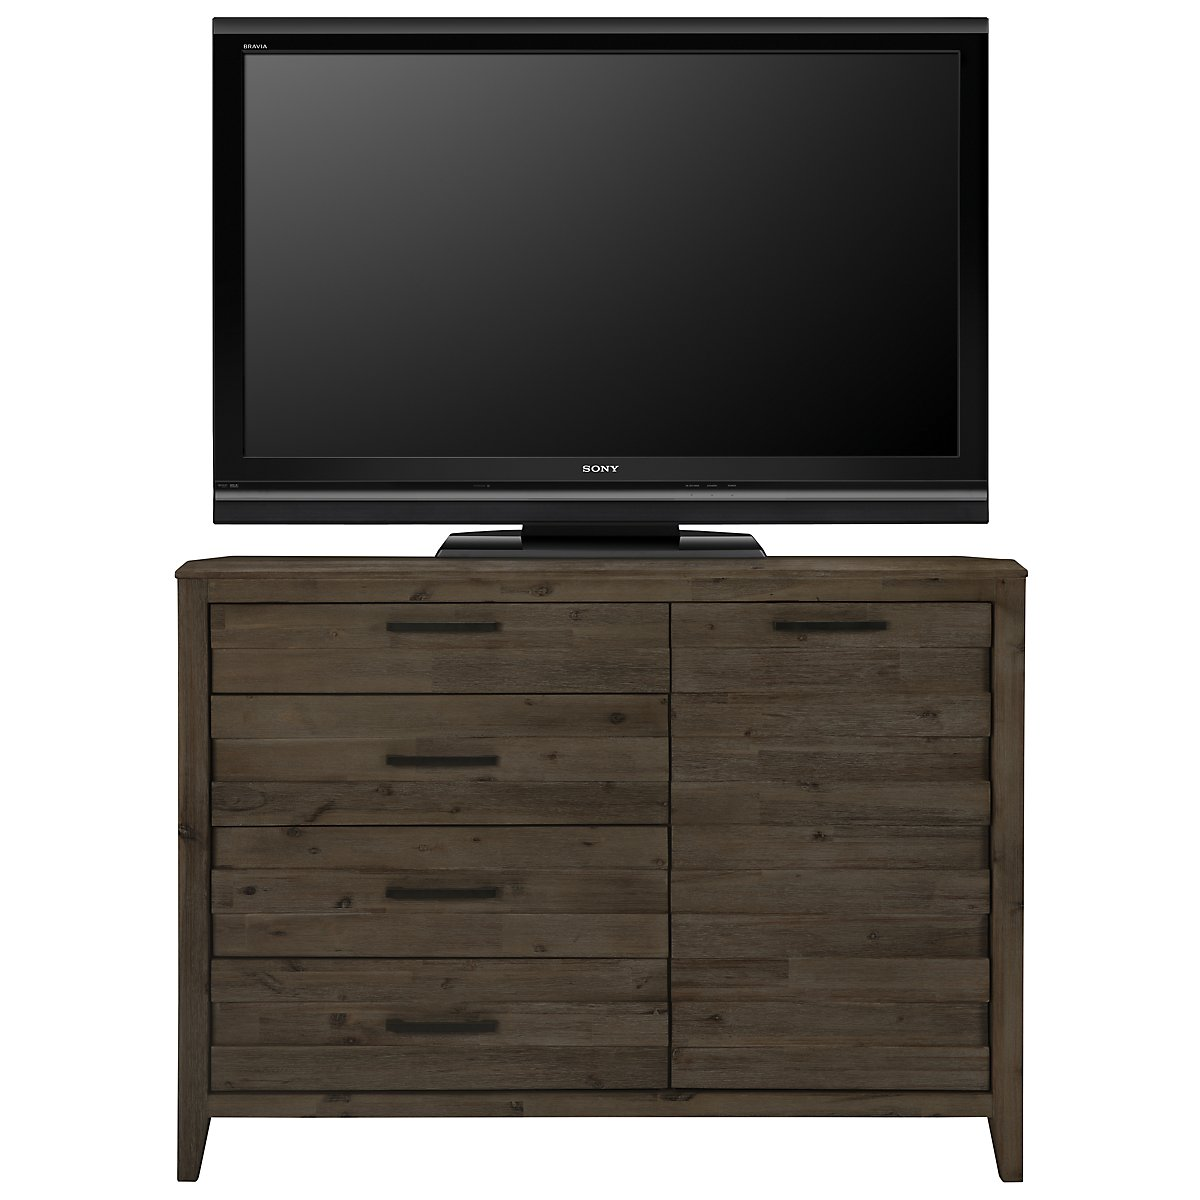 Casablanca Dark Tone Wood Media Chest